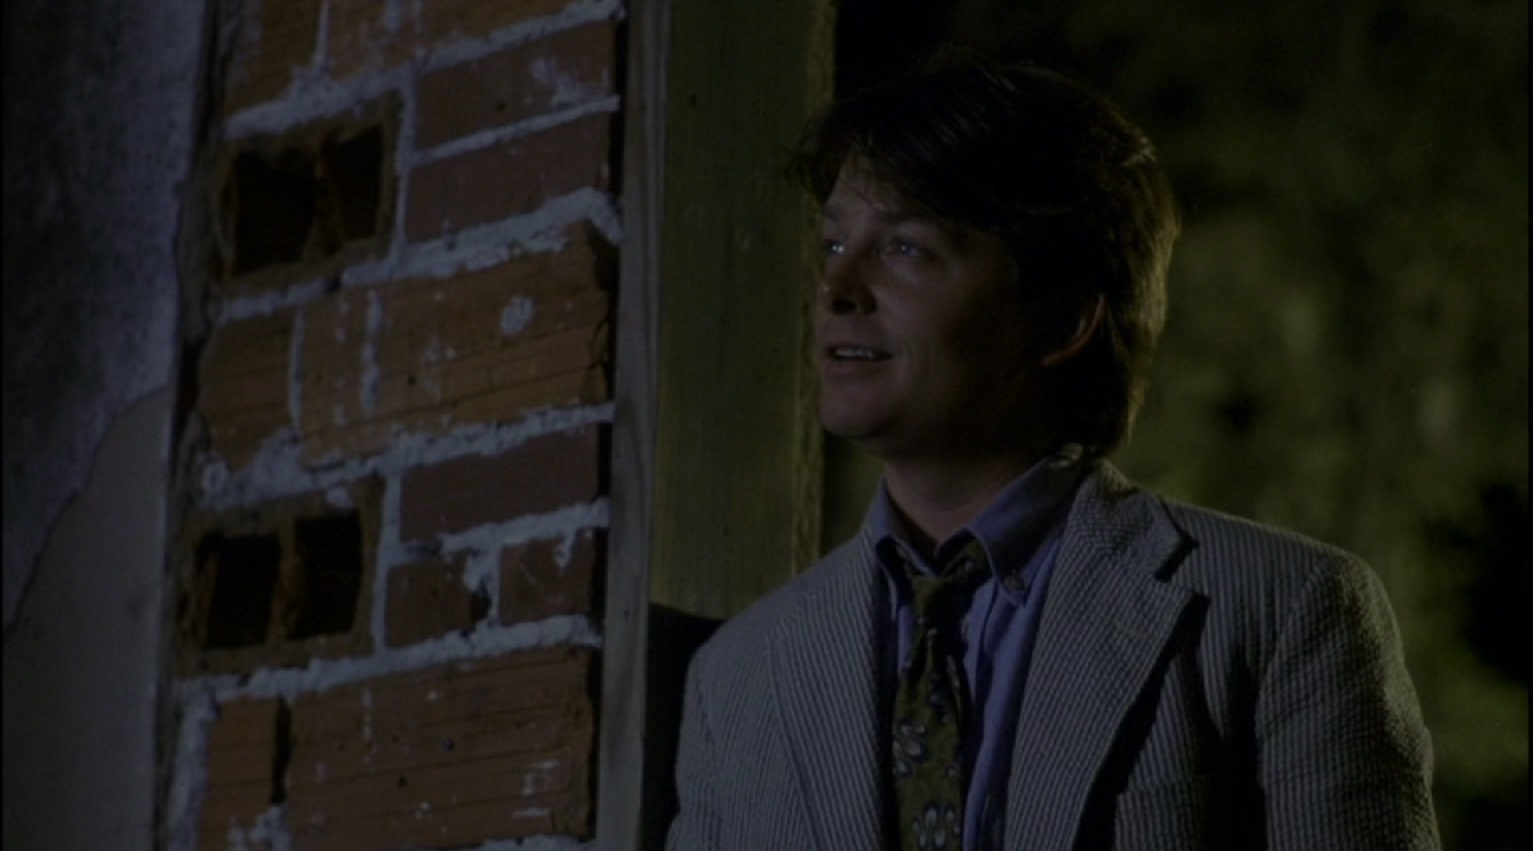 Doc Hollywood film still 1